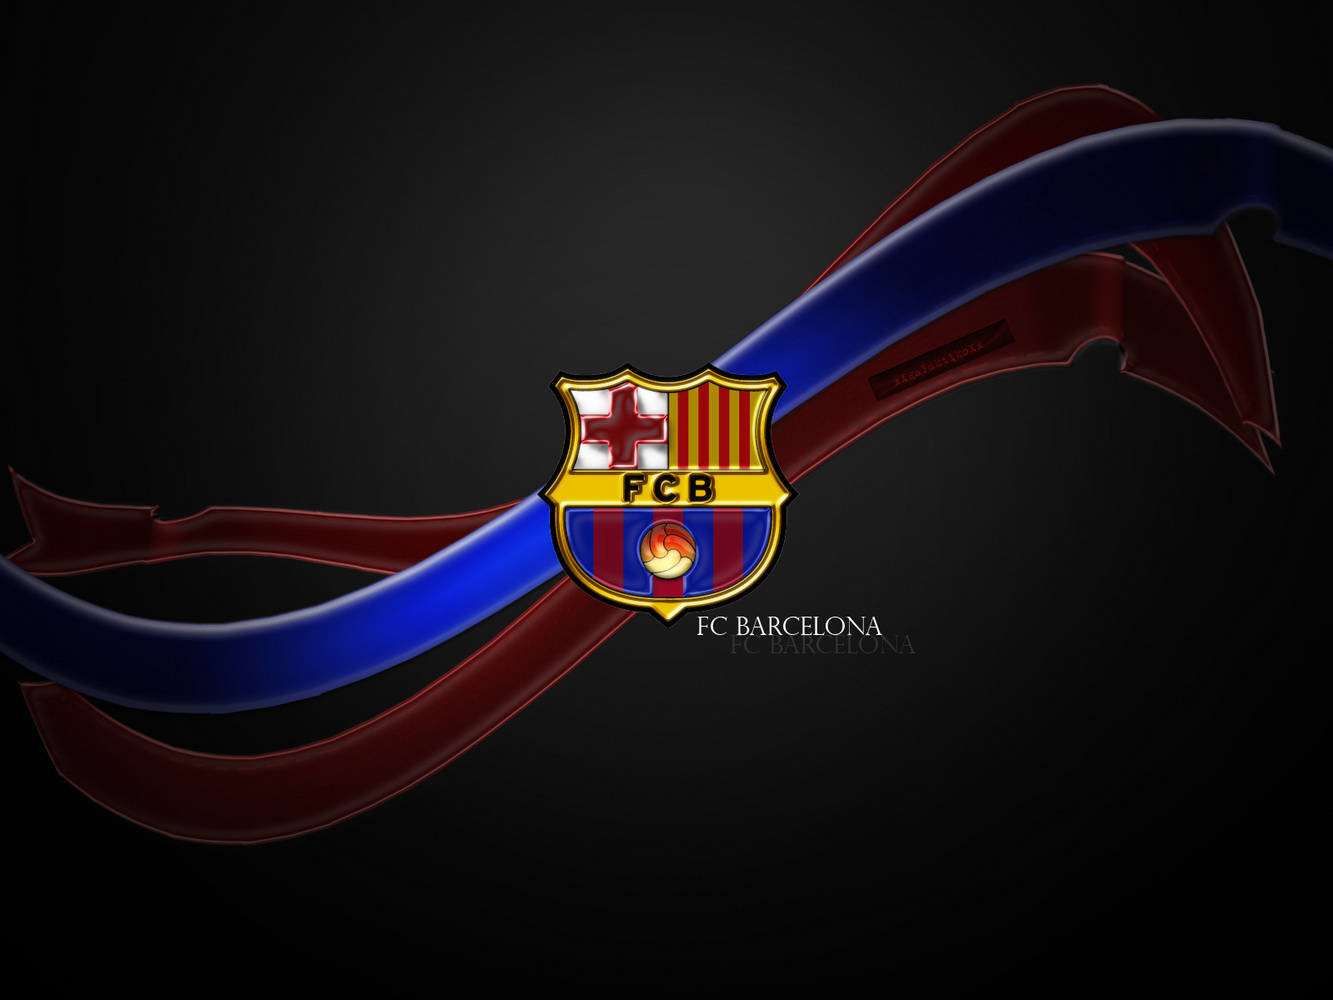 ALL SPORTS CELEBRITIES: FC Barcelona Logos New HD Wallpapers 2013